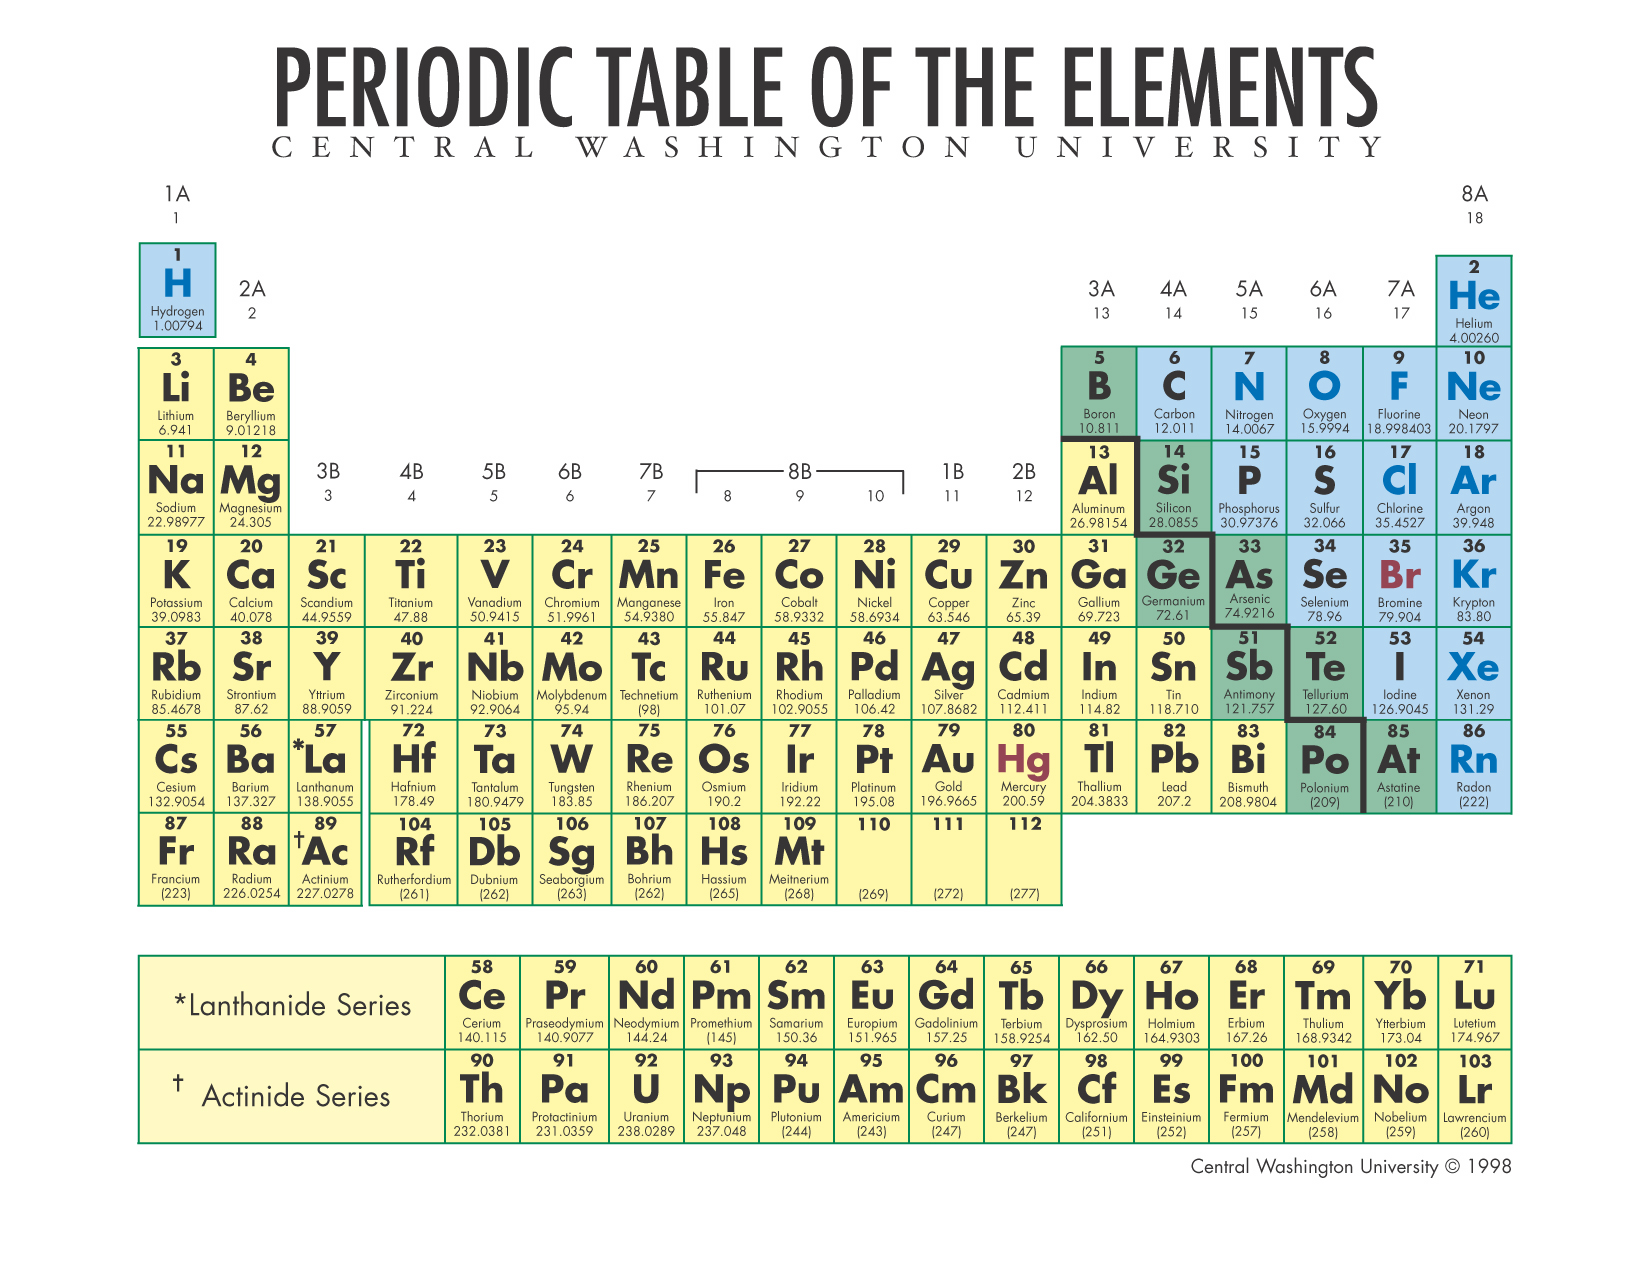 Periodic table of the intoxicants images periodic table images mii periodic table images periodic table images periodic table of the intoxicants gallery periodic table images gamestrikefo Gallery